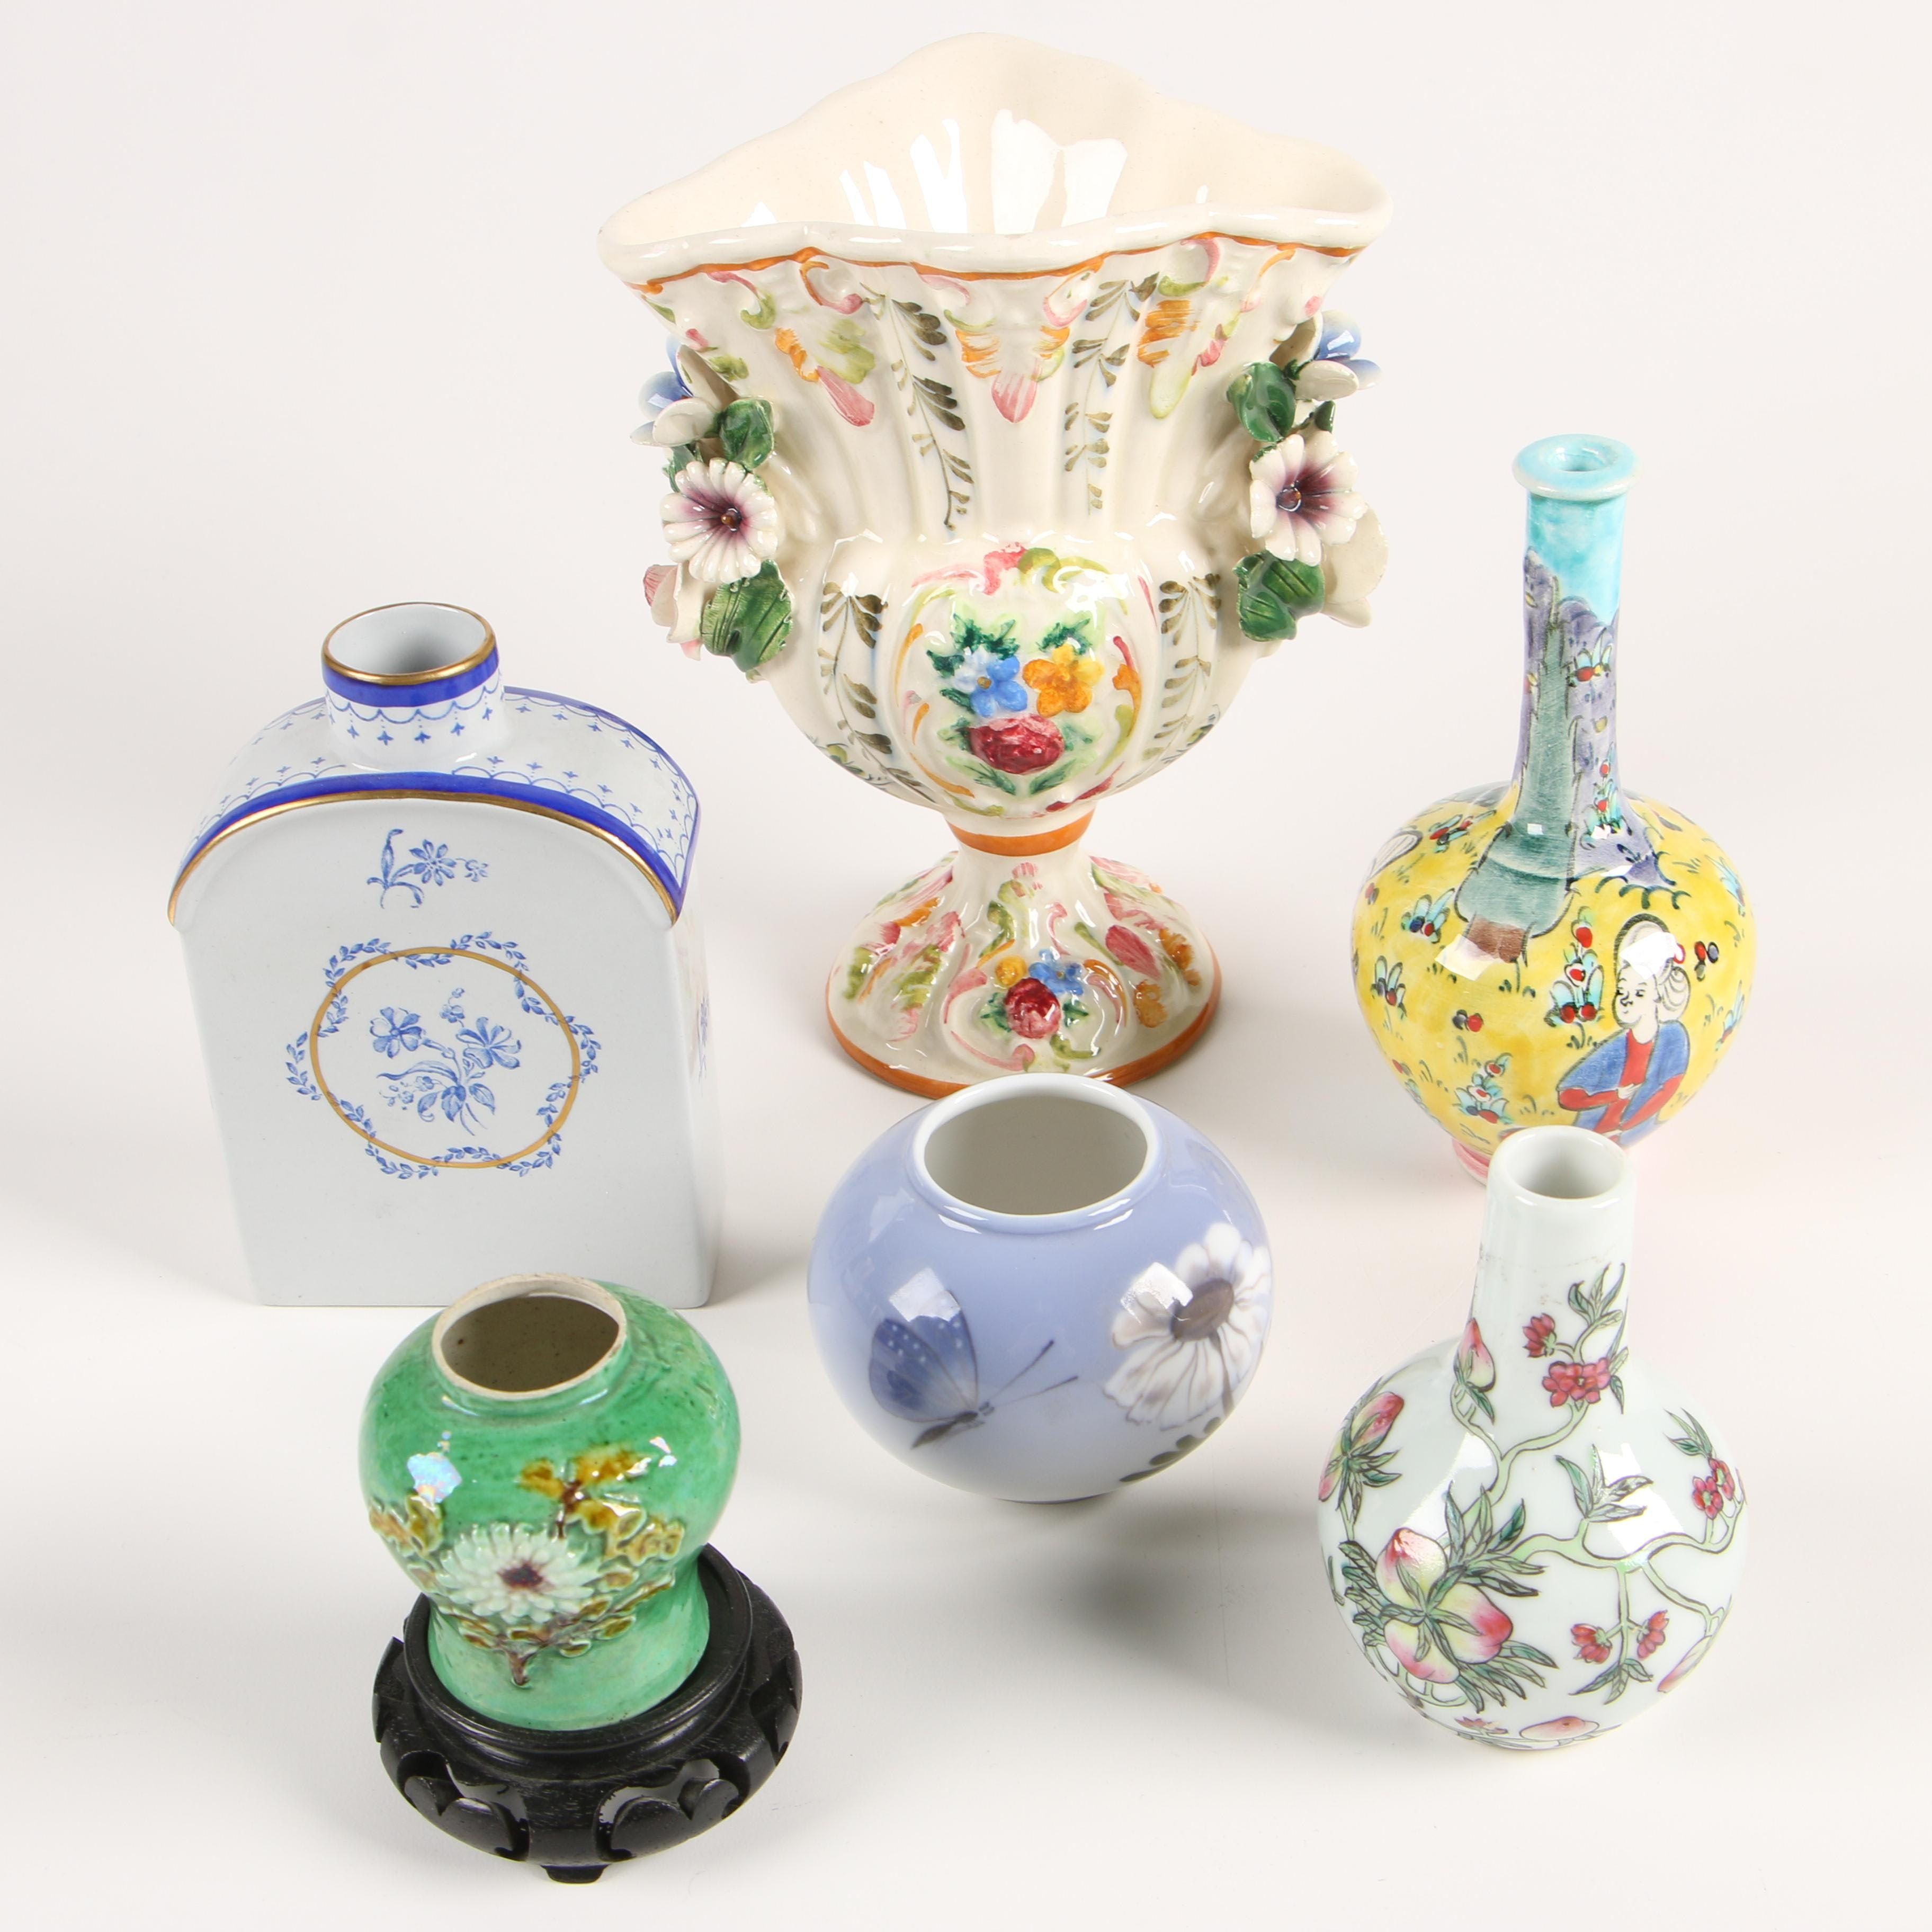 Royal Copenhagen, Spode and Other Hand-Painted Ceramic Vases